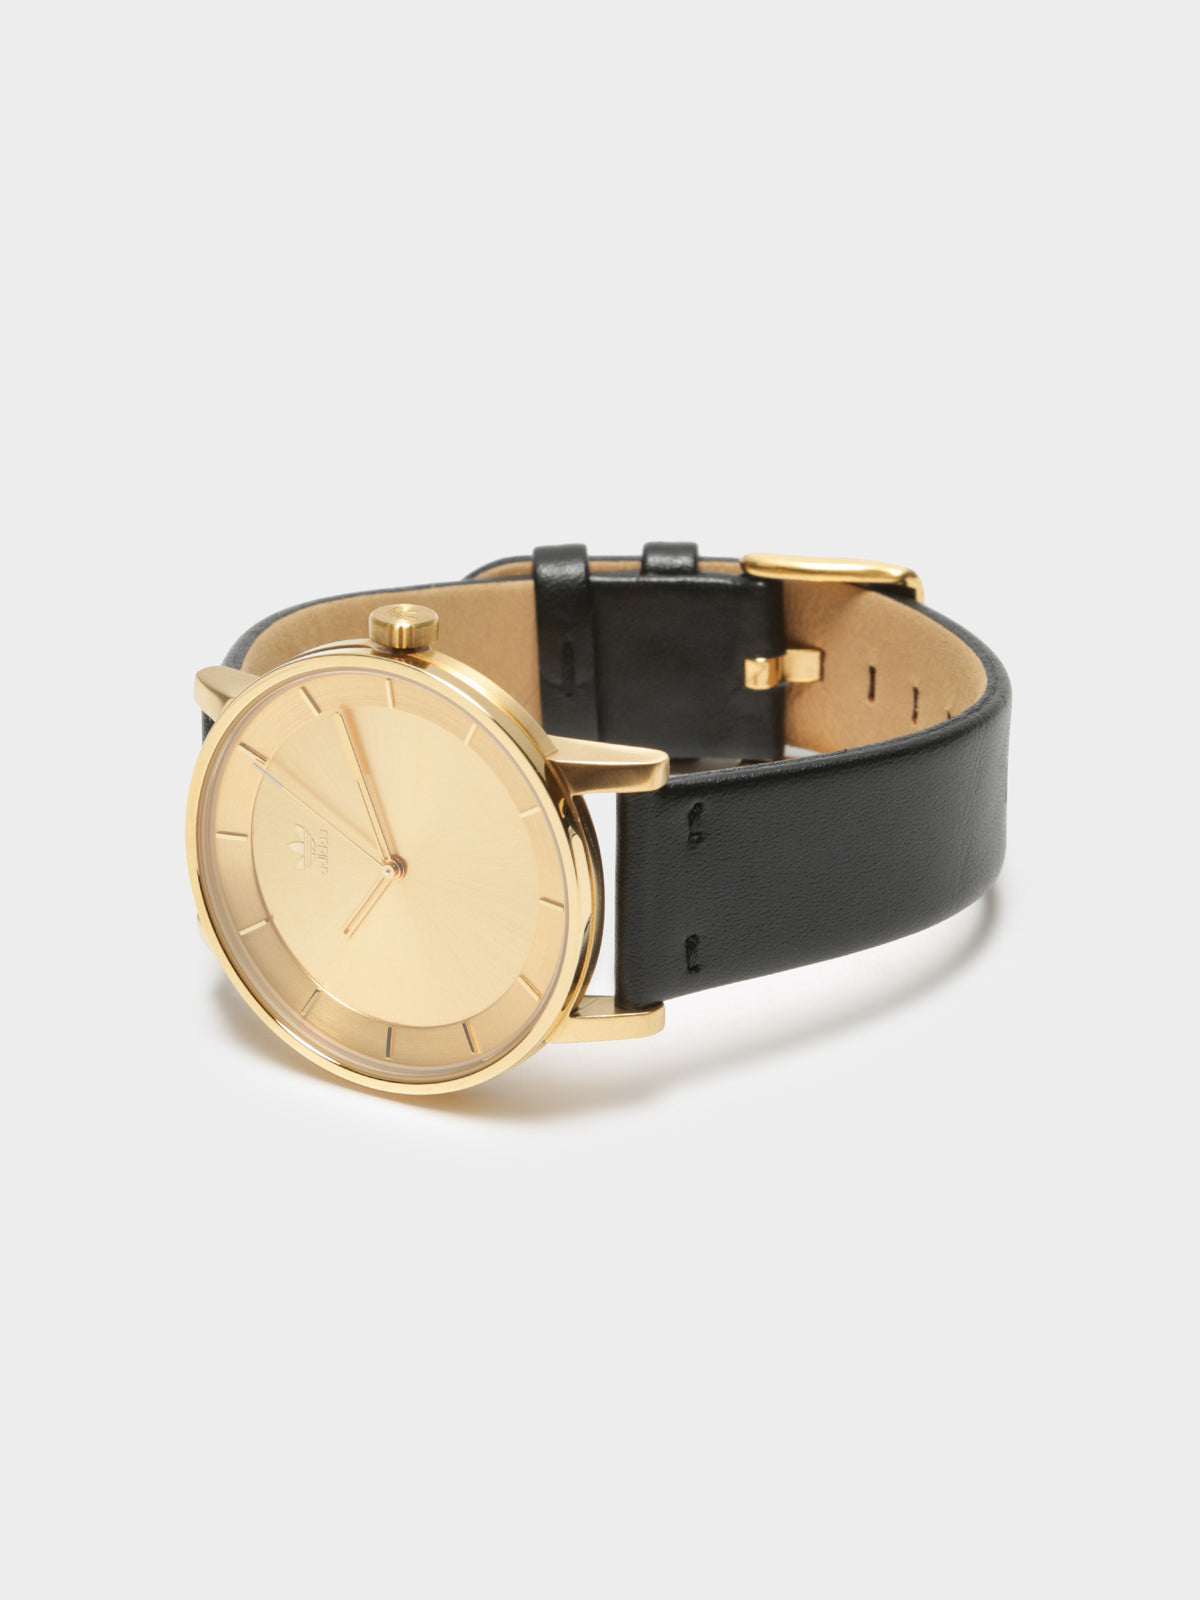 District_L1 Analogue Watch in All Gold & Black